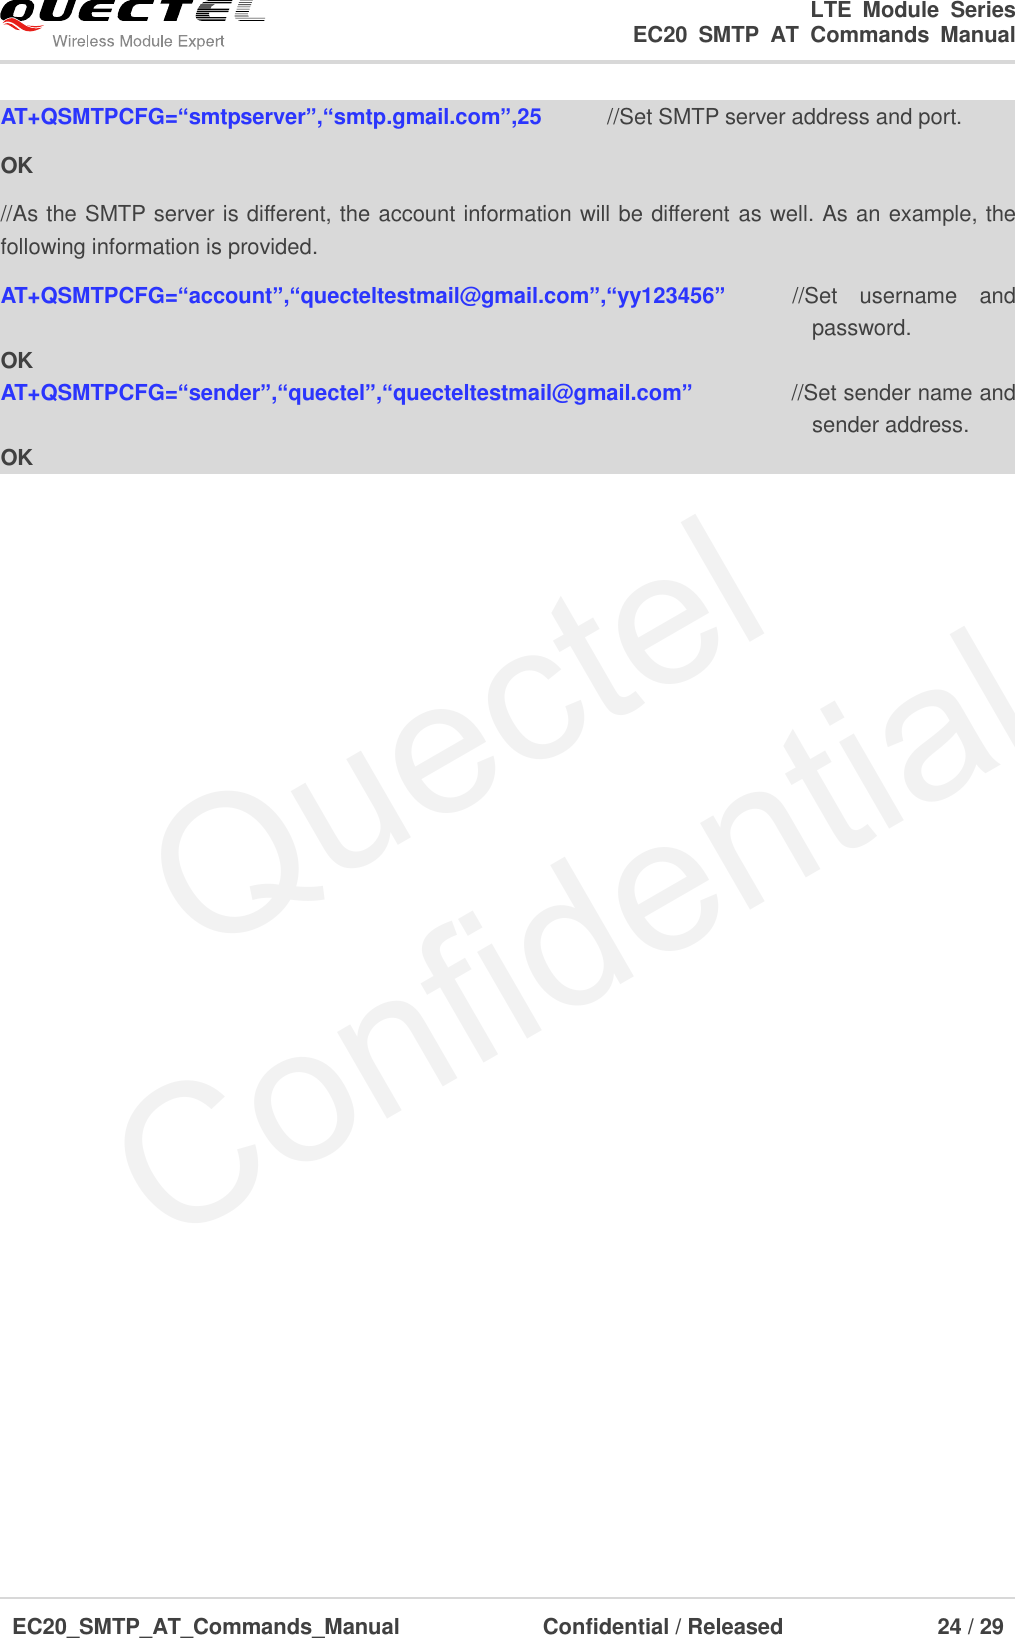 Quectel EC20 SMTP AT Commands Manual V1 0